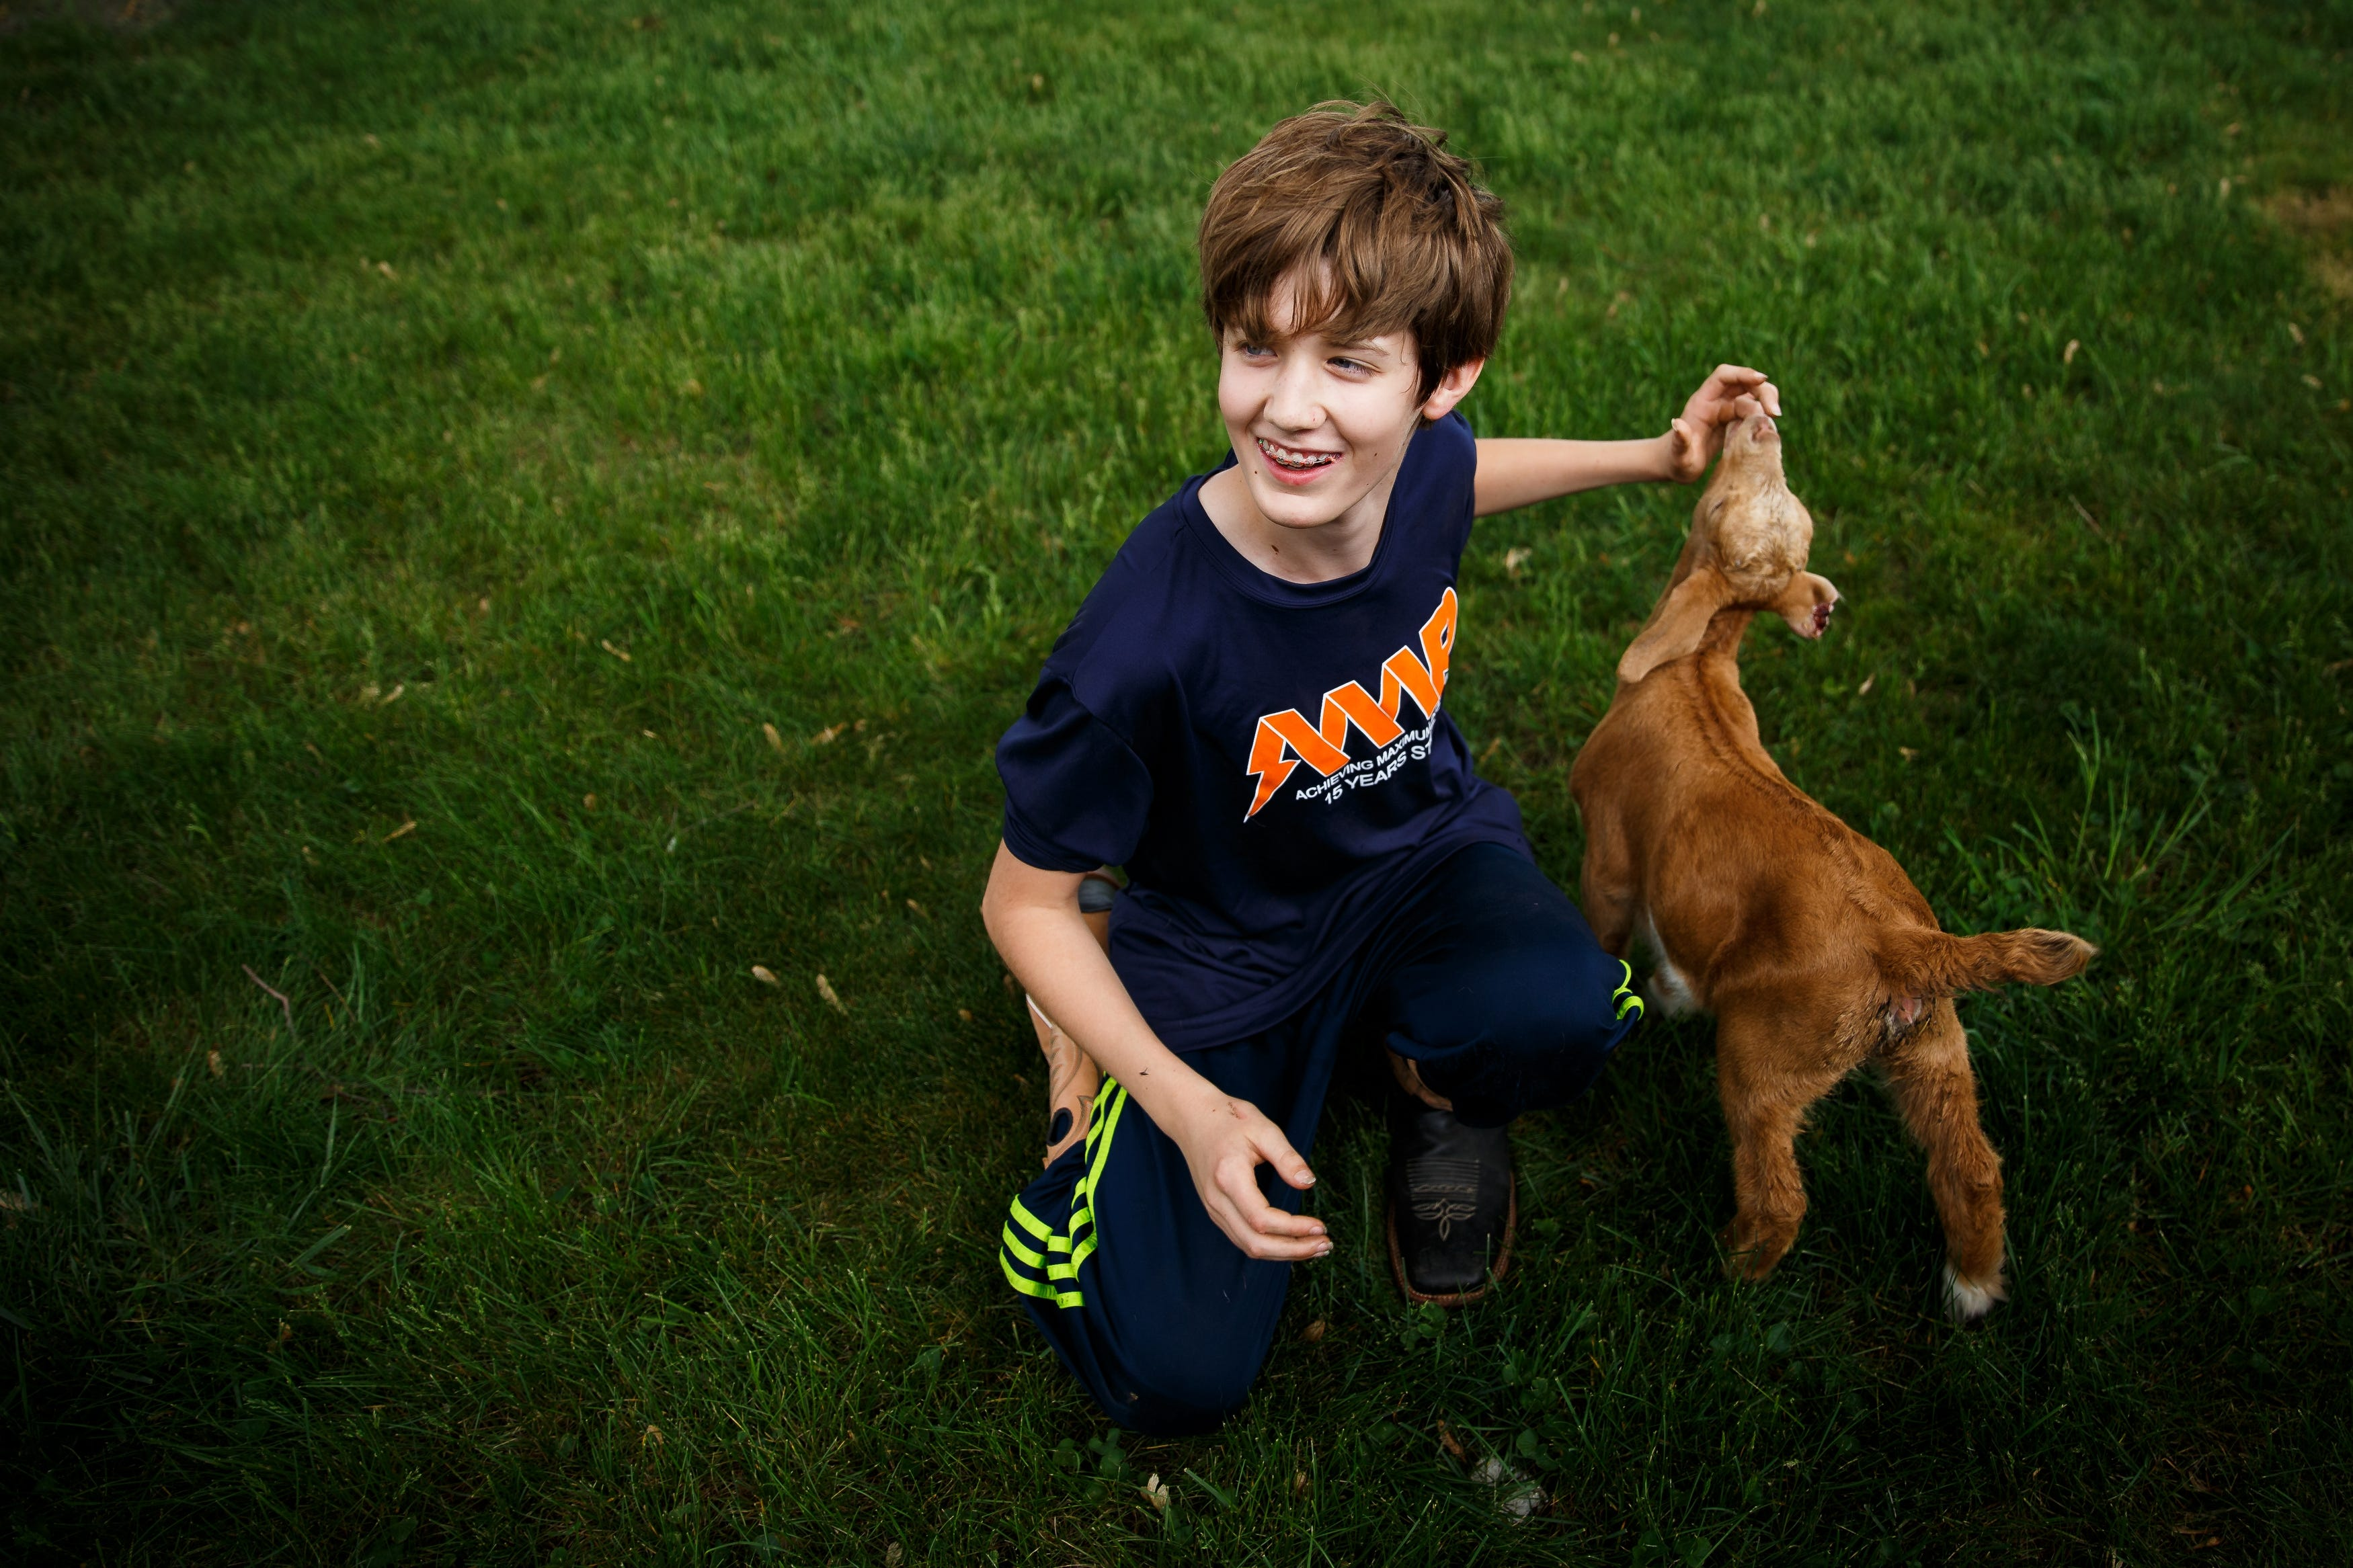 Farm family struggles to find help for their autistic son.